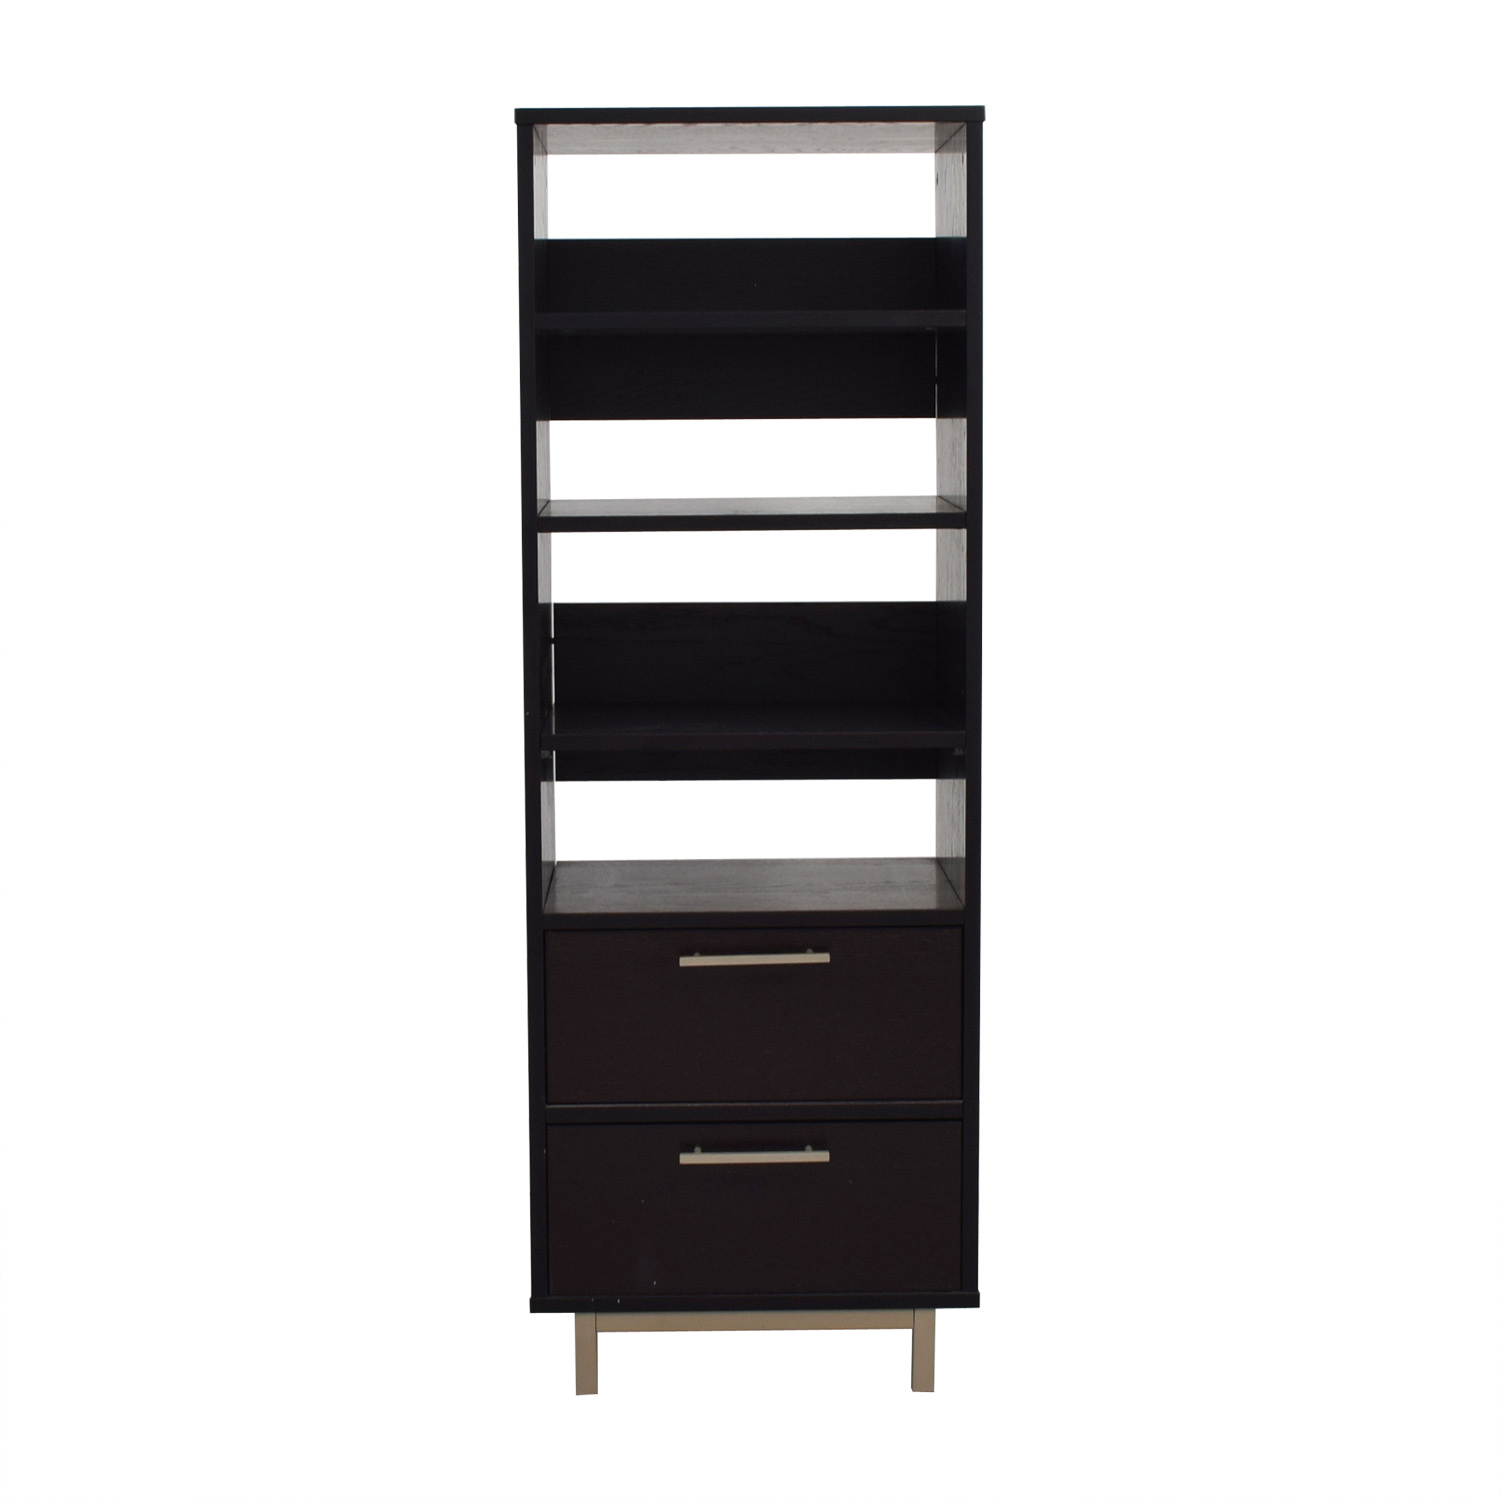 Crate & Barrel Crate & Barrel Wood Bookcase